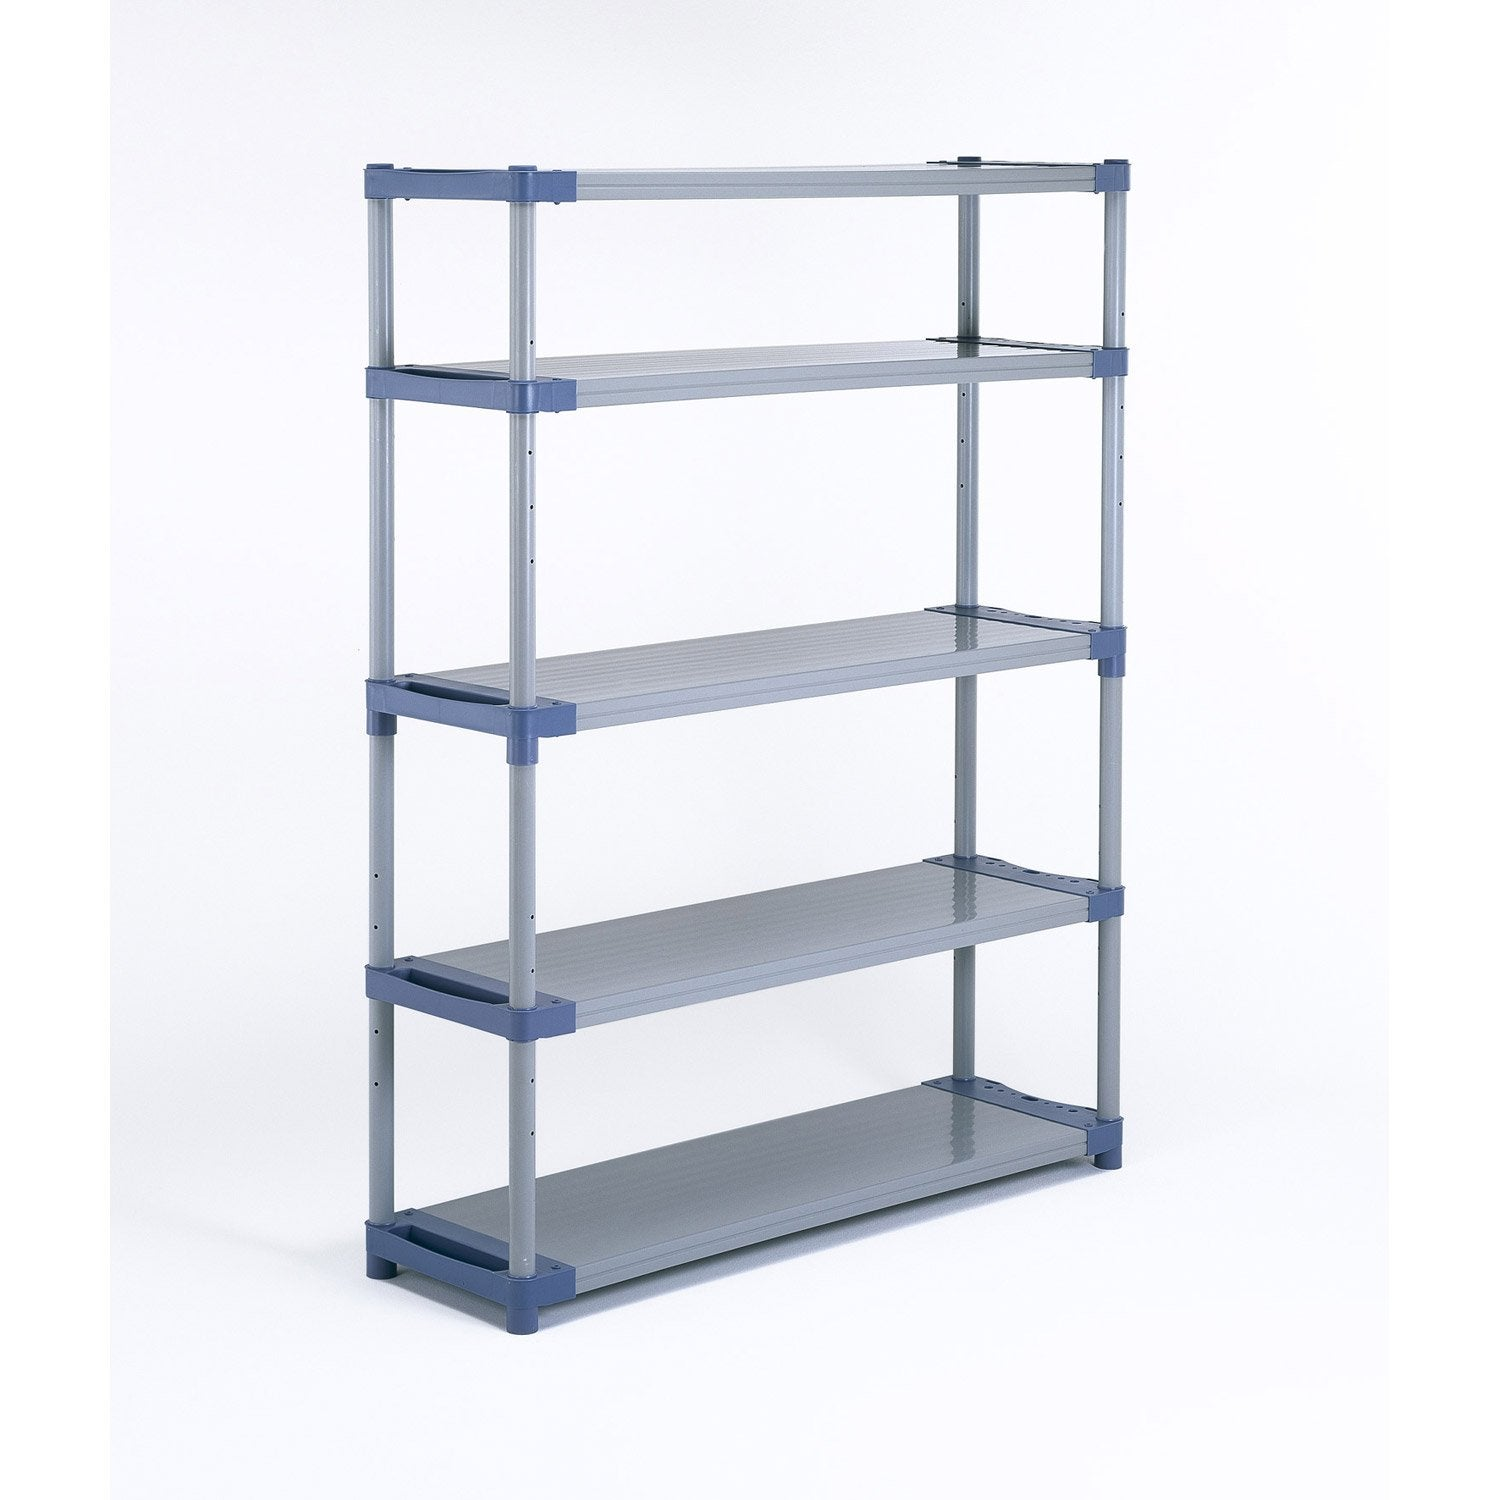 Etag re r sine grosfillex 5 tablettes gris bleu for Balancines para jardin leroy merlin